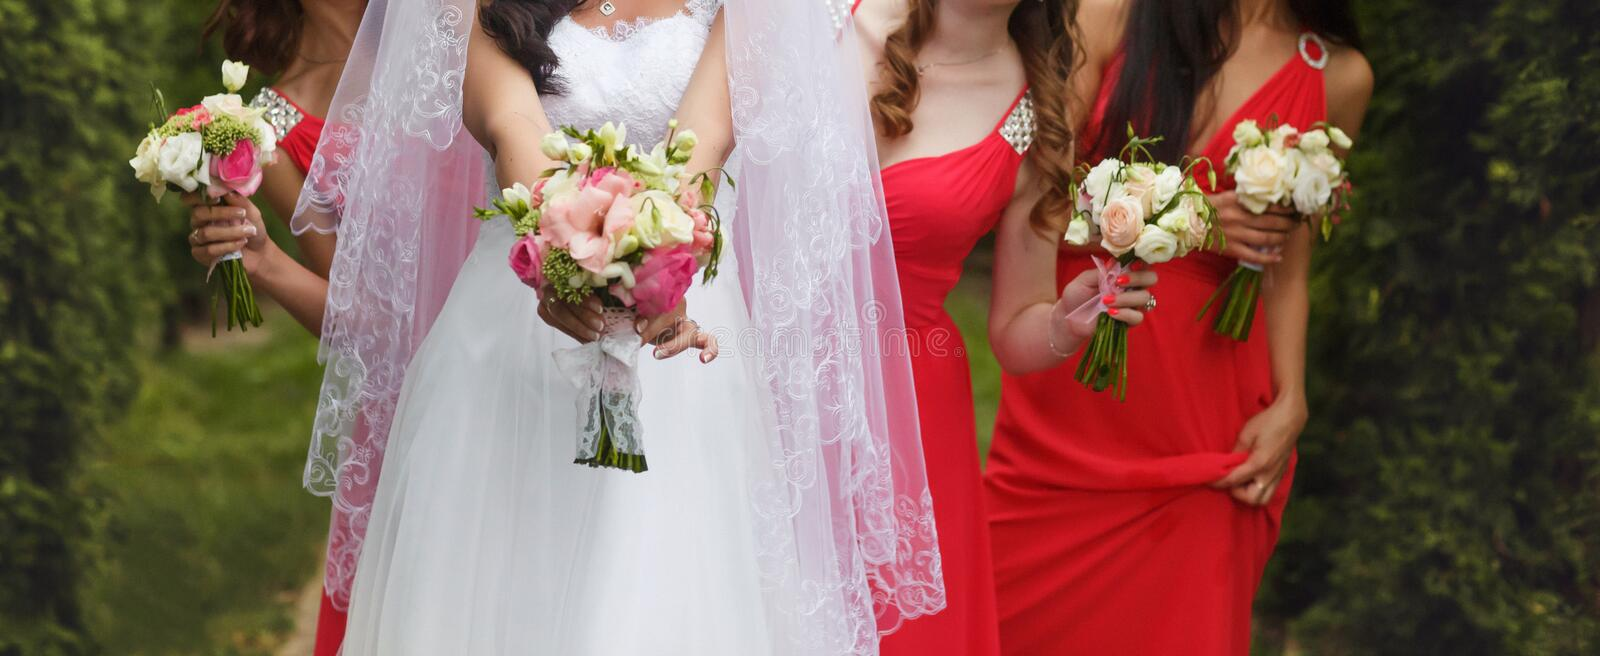 A close-up of bride and bridesmaids in pink dresses holding little wedding bouquets royalty free stock photography